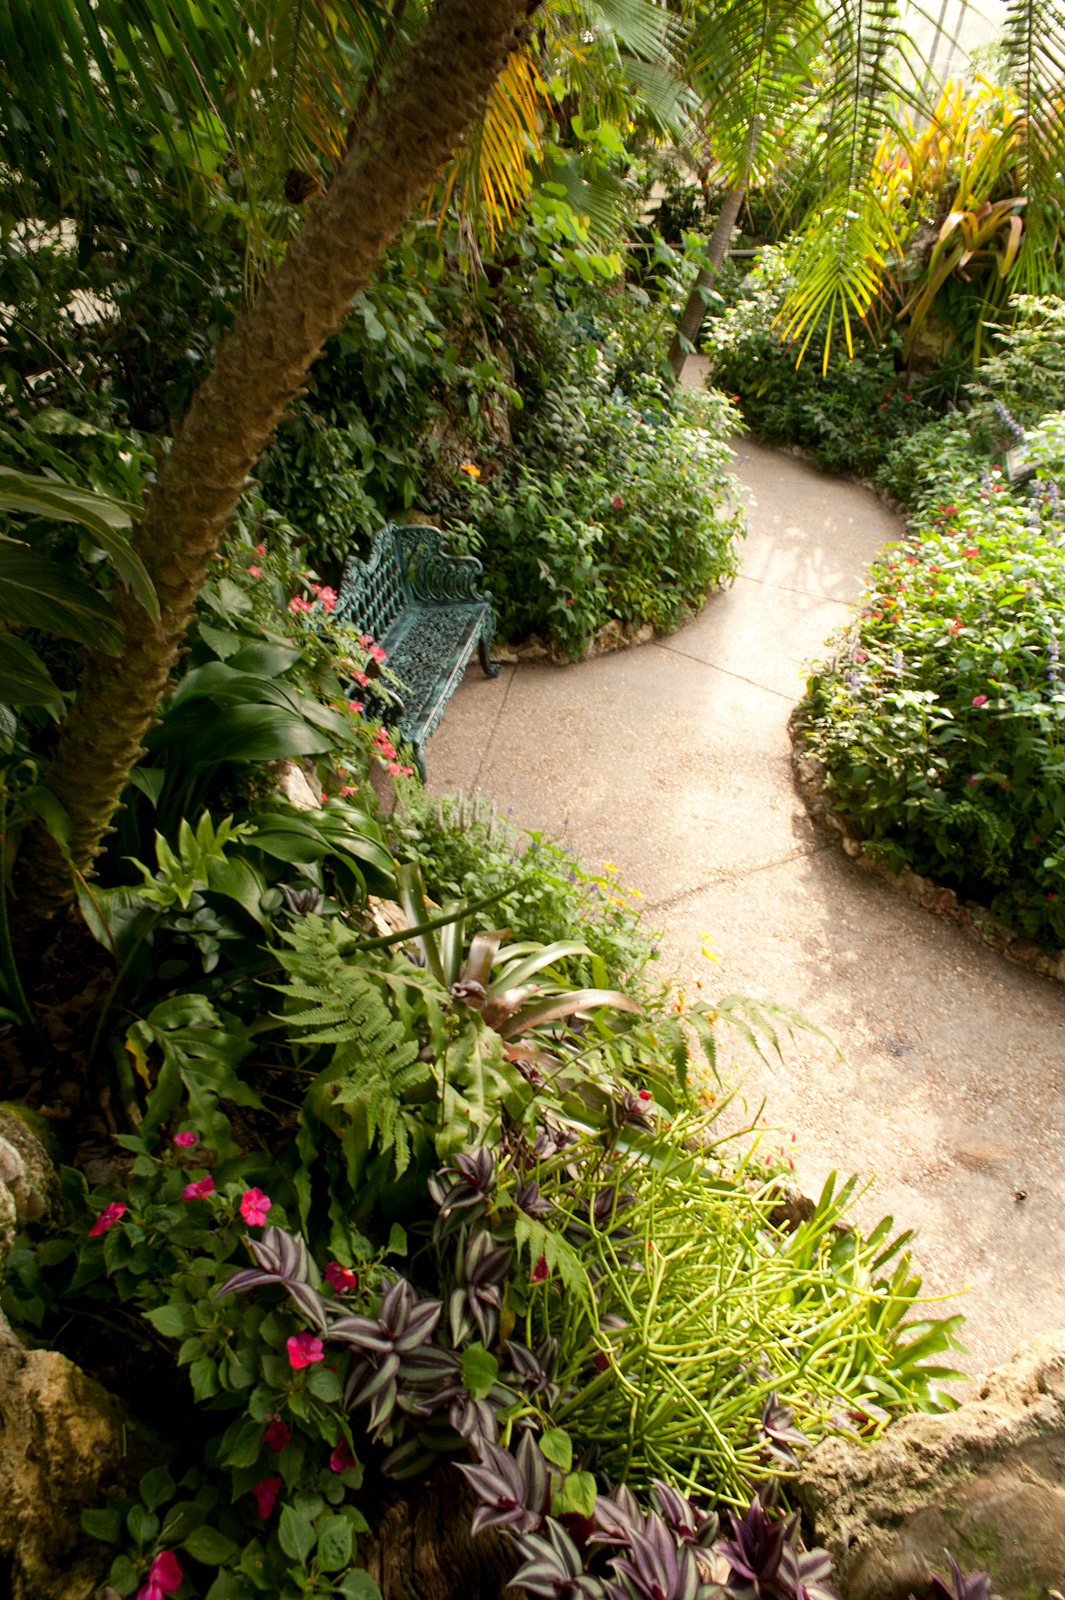 discover great design ideas and plant selections for your own landscape - Uf Butterfly Garden